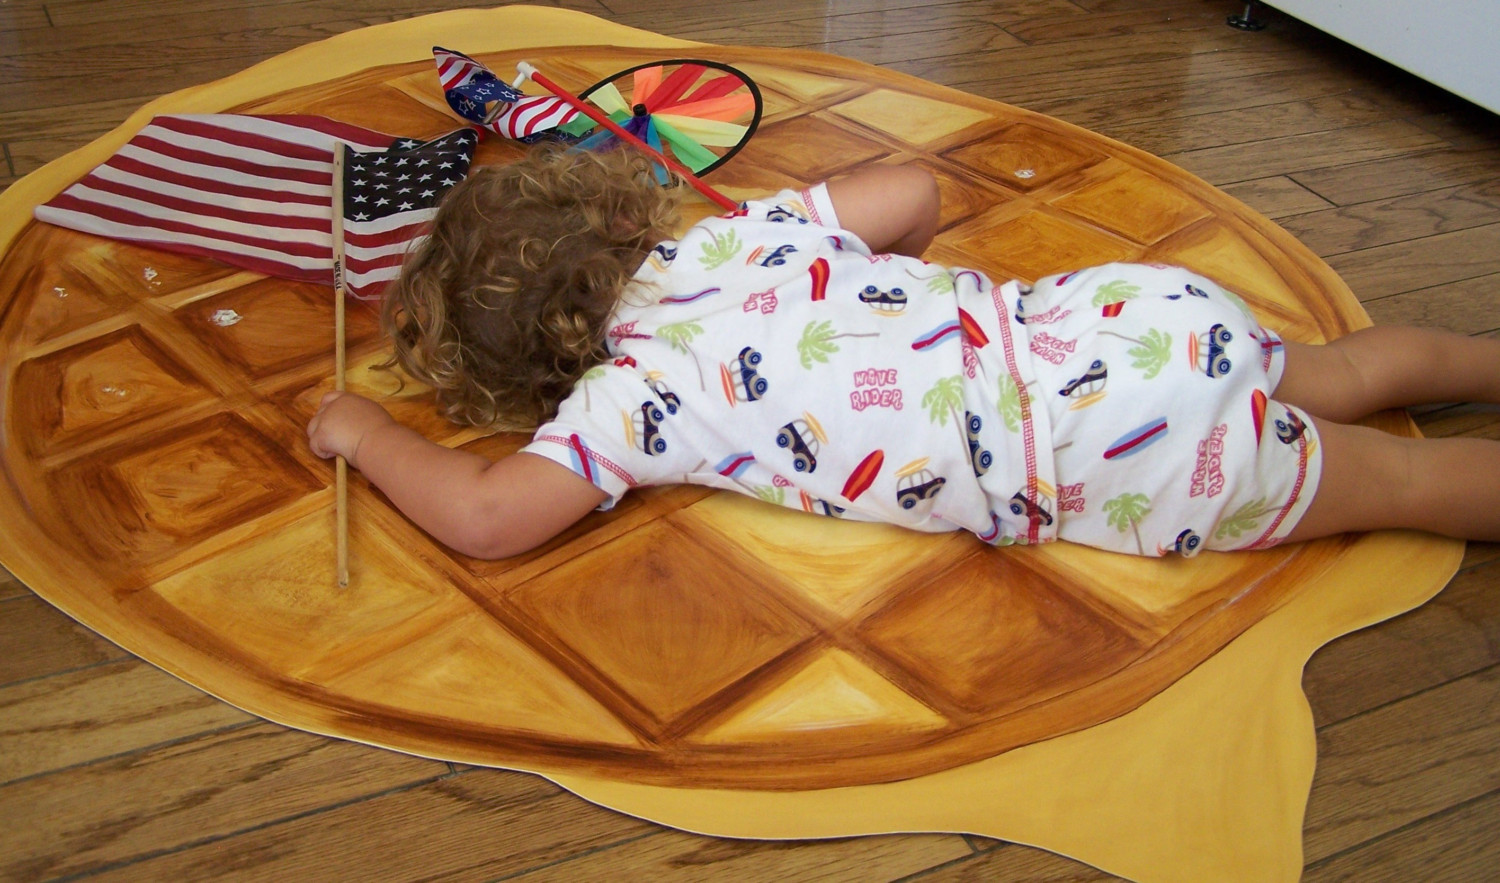 Super Realistic Giant Waffles, Sweeties & Sushi Floor Mats for your Home